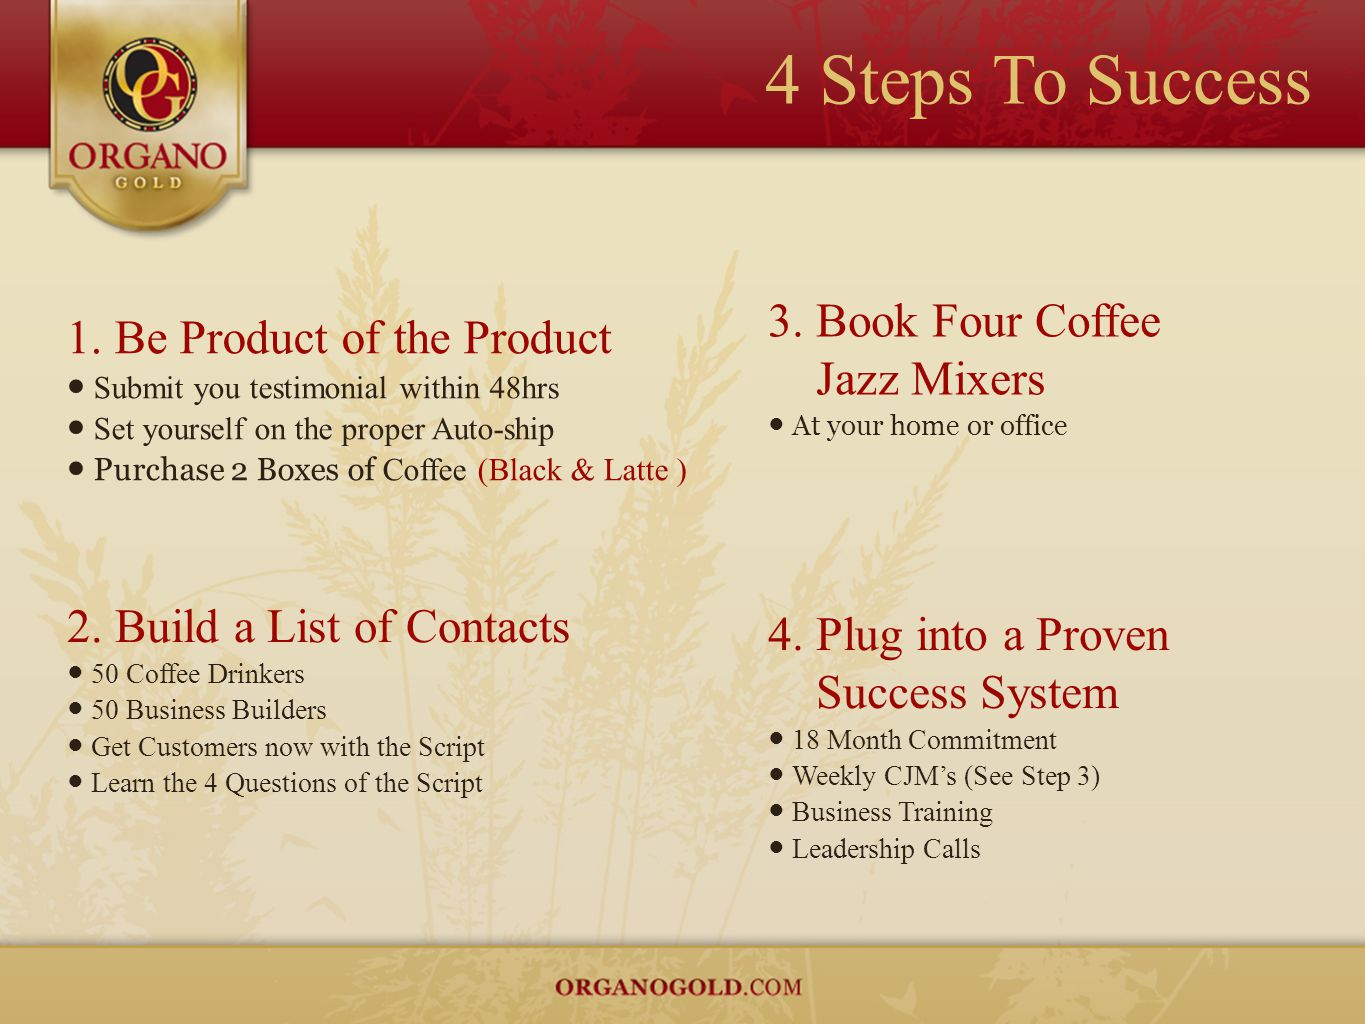 4 Steps To Success 1. Be Product of the Product ● Submit you testimonial within 48hrs ● Set yourself on the proper Auto-ship ● Purchase 2 Boxes of Cof